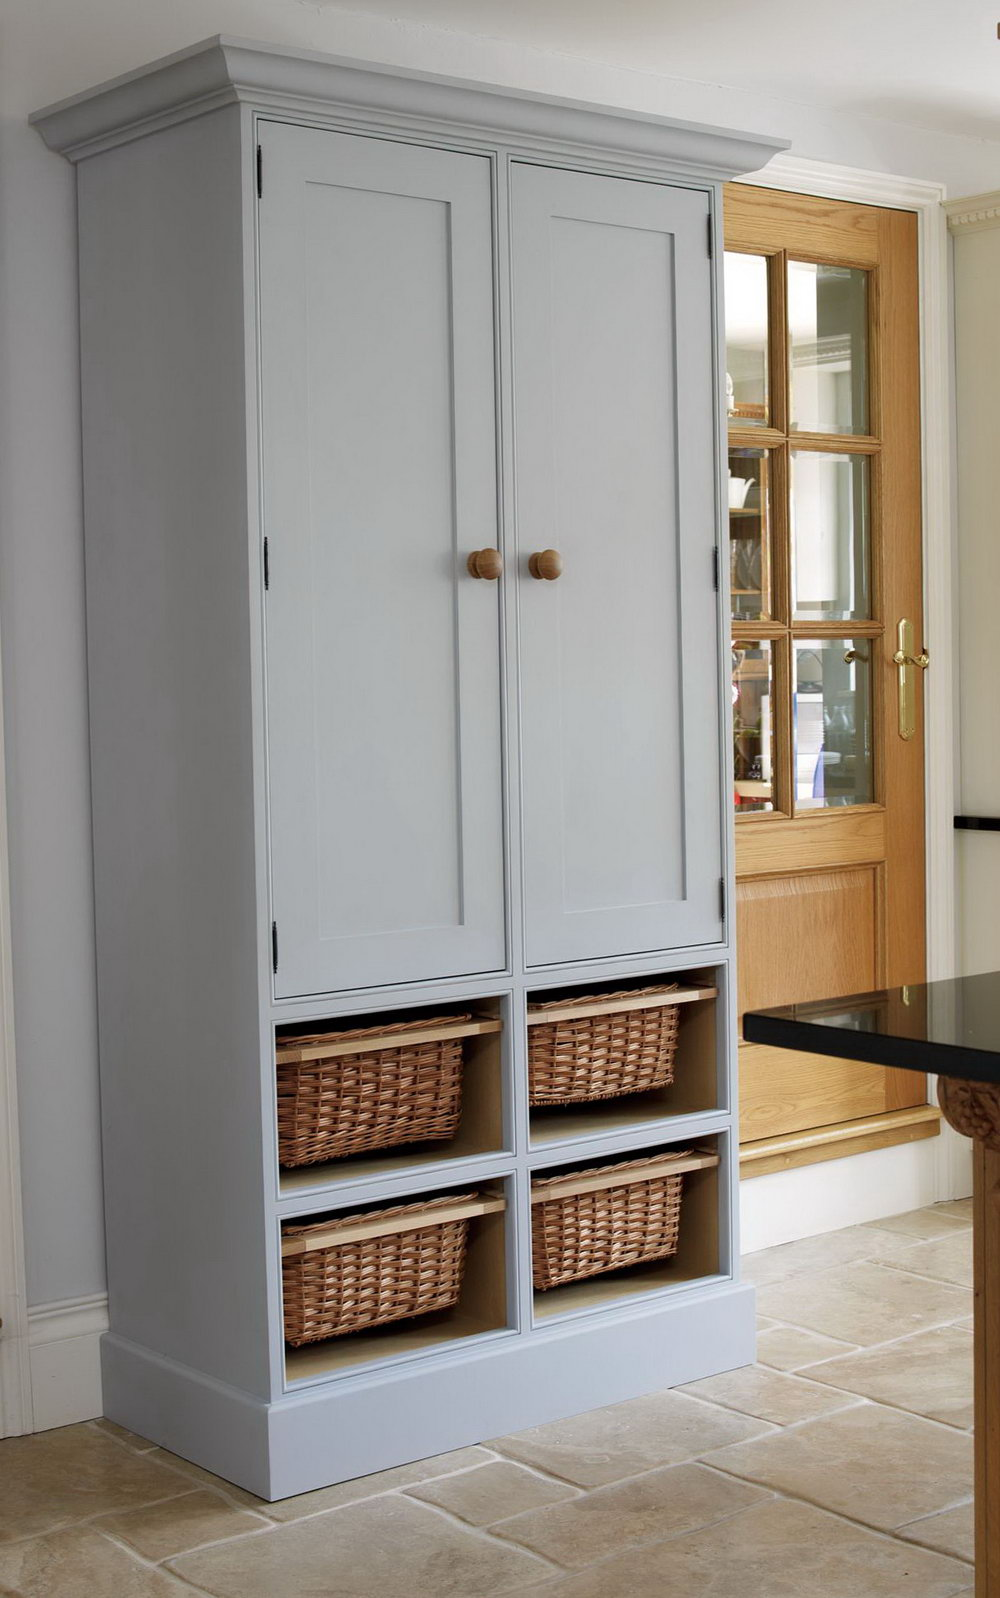 Pantry Cabinet For Kitchen Freestanding